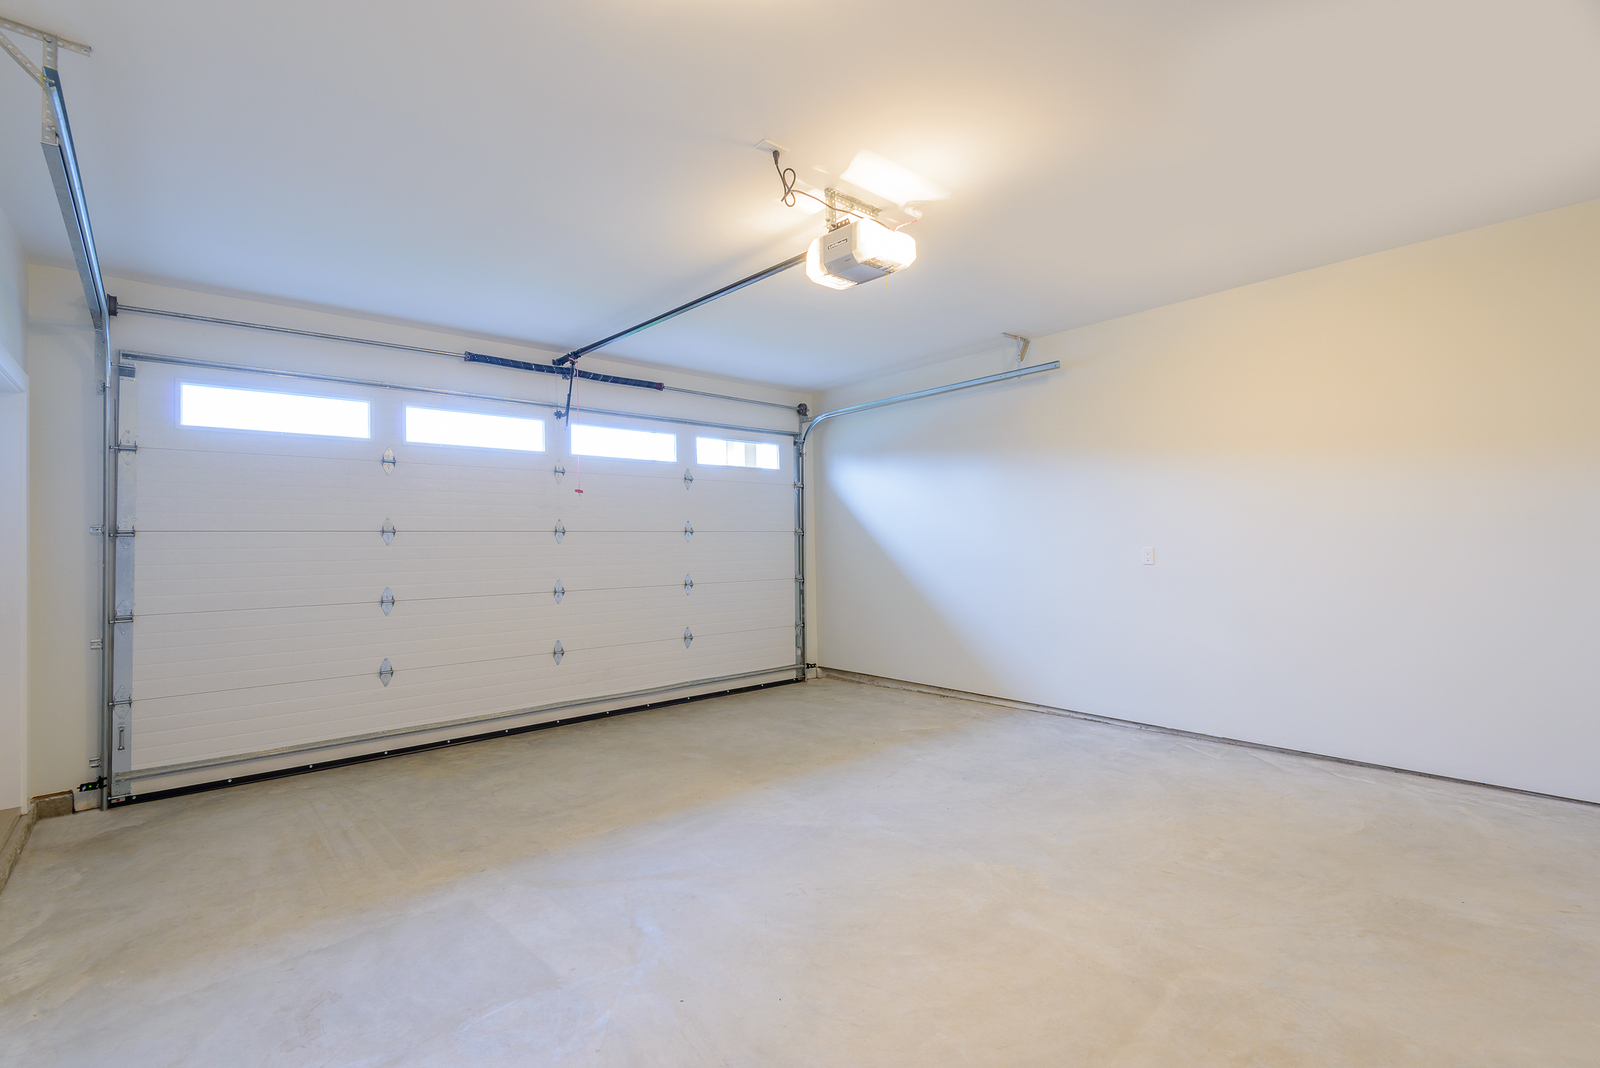 Garage Door Parts Anatomy Blog The Anatomy Of Your Garage Door